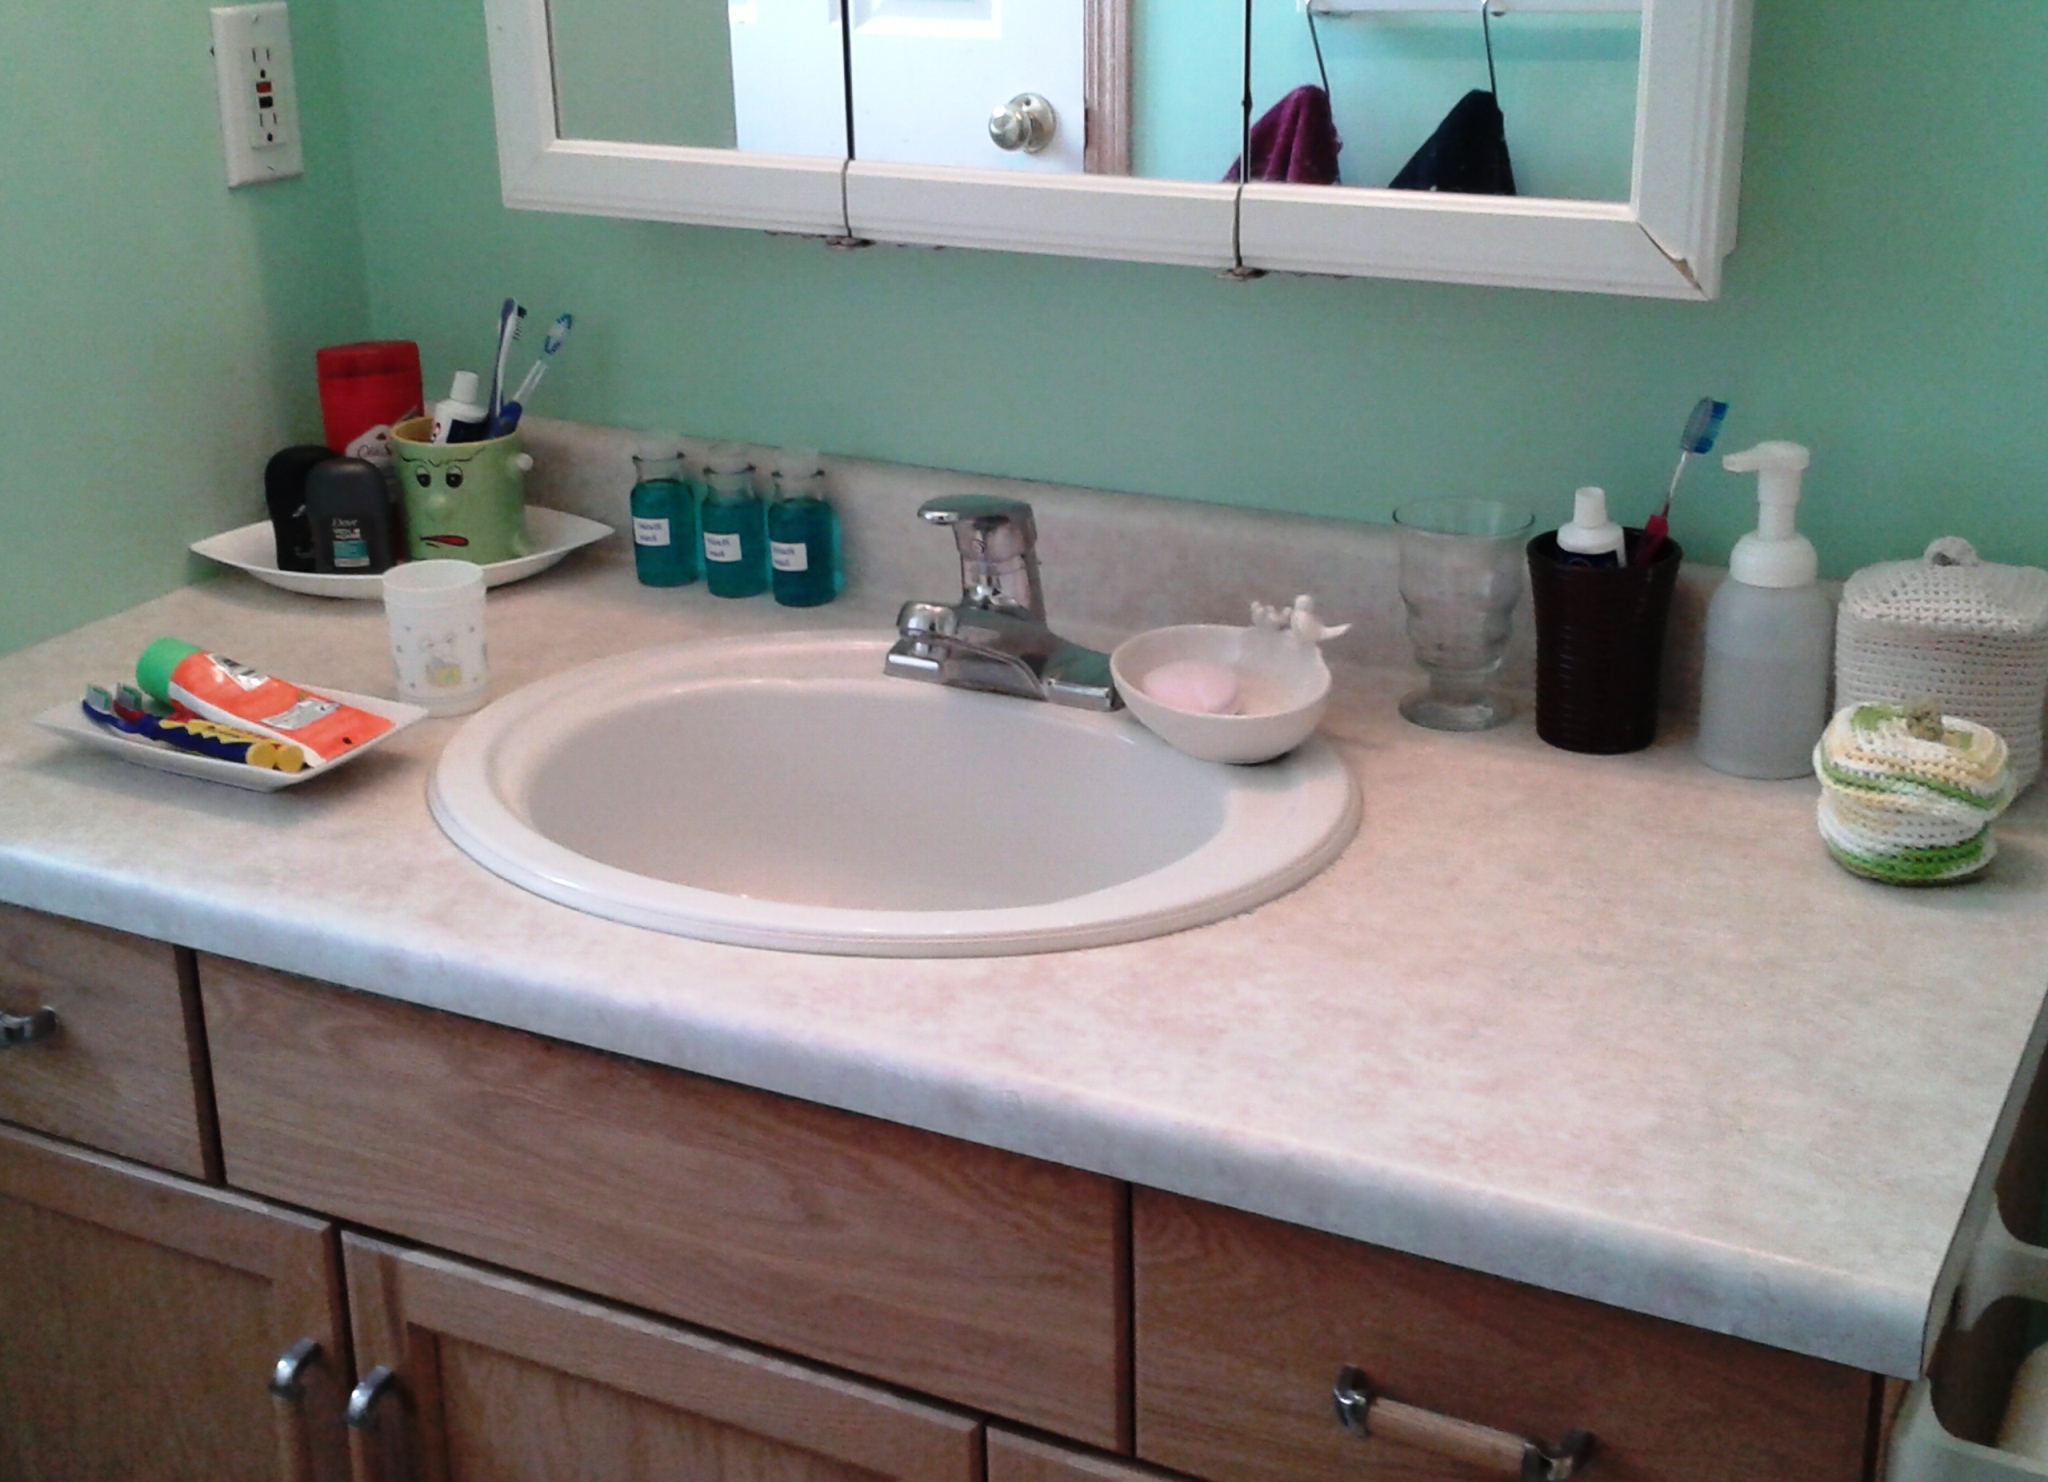 Vanity organization ideas the instant tricks homesfeed How to organize bathroom